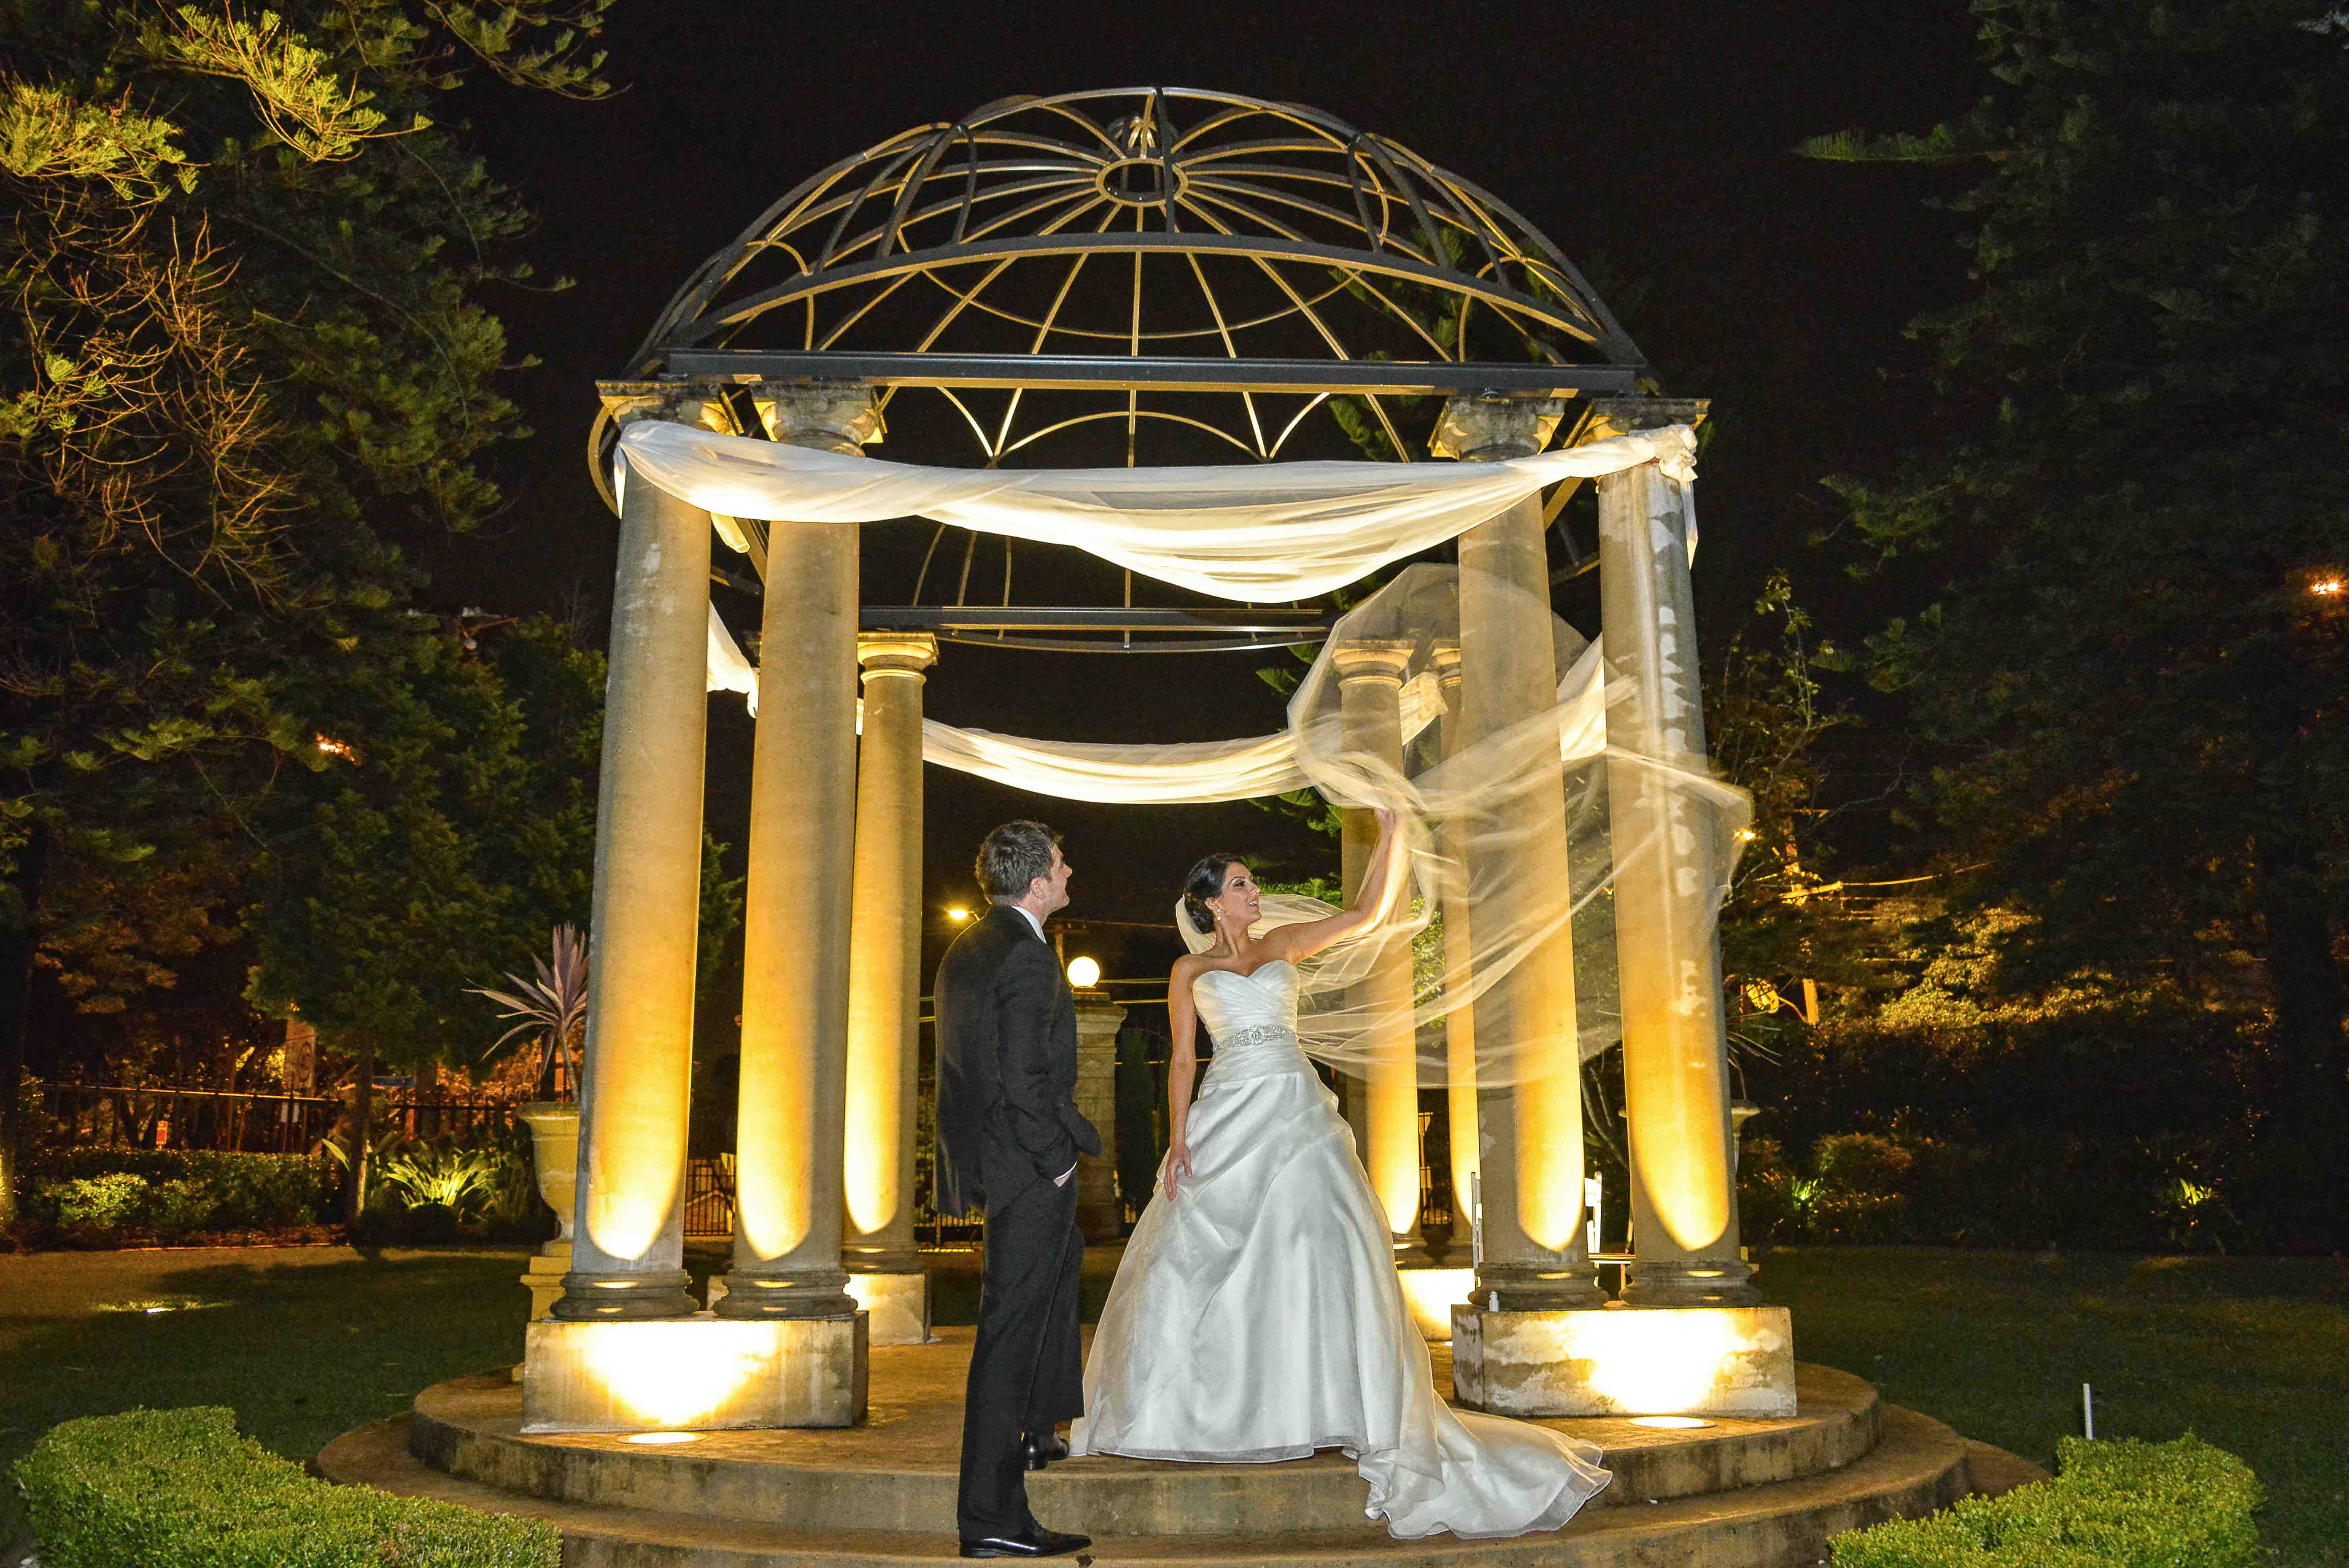 Morkos Wedding Photography & Video first image